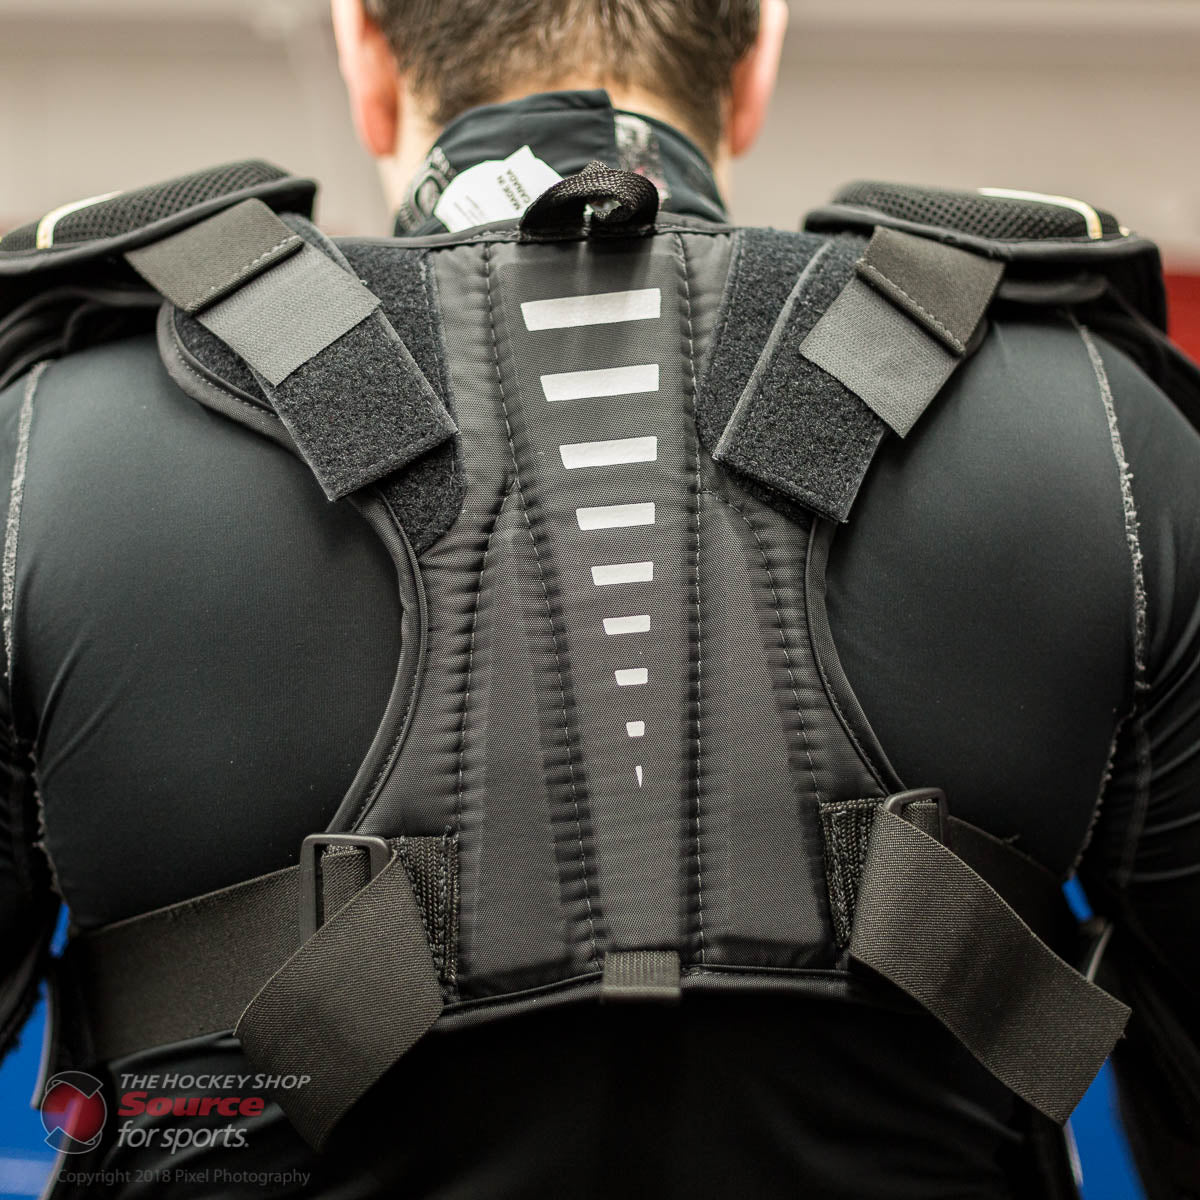 Brian's OPTiK Chest & Arm Protector